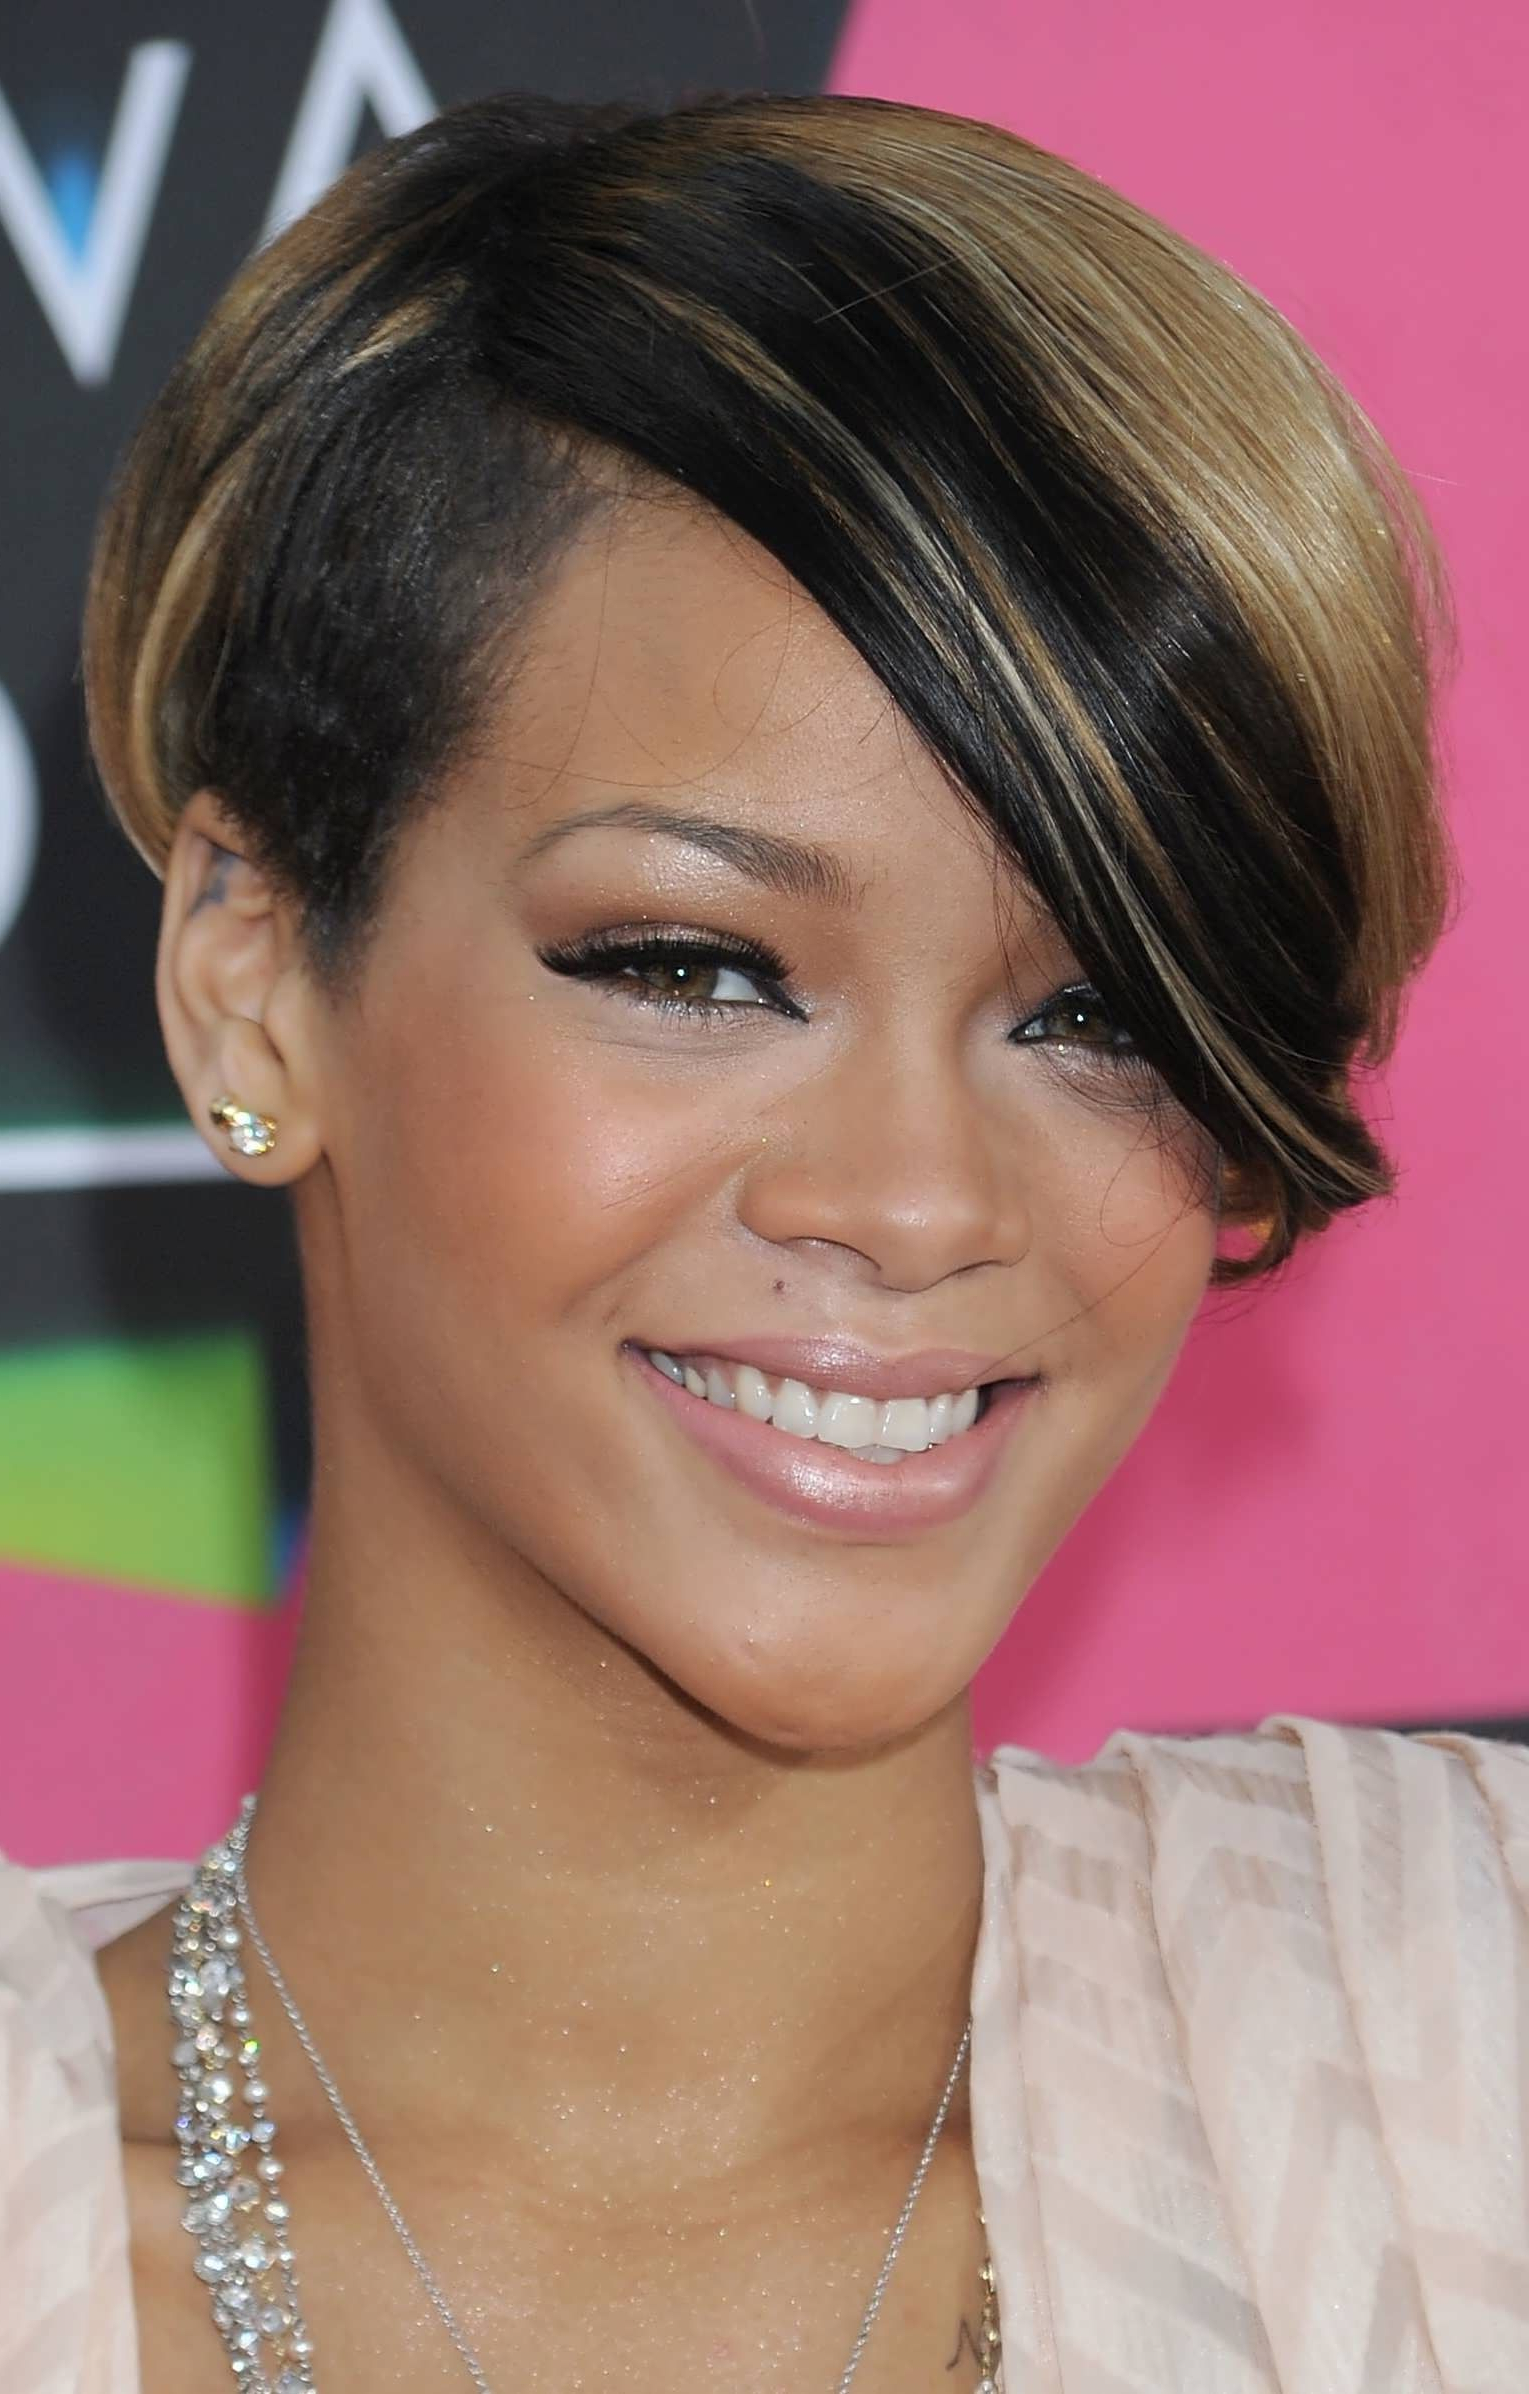 Pinbestenfrisurcom On Besten Frisur | Pinterest | Short Layered Intended For Short Haircuts For Black Women With Oval Faces (View 5 of 25)